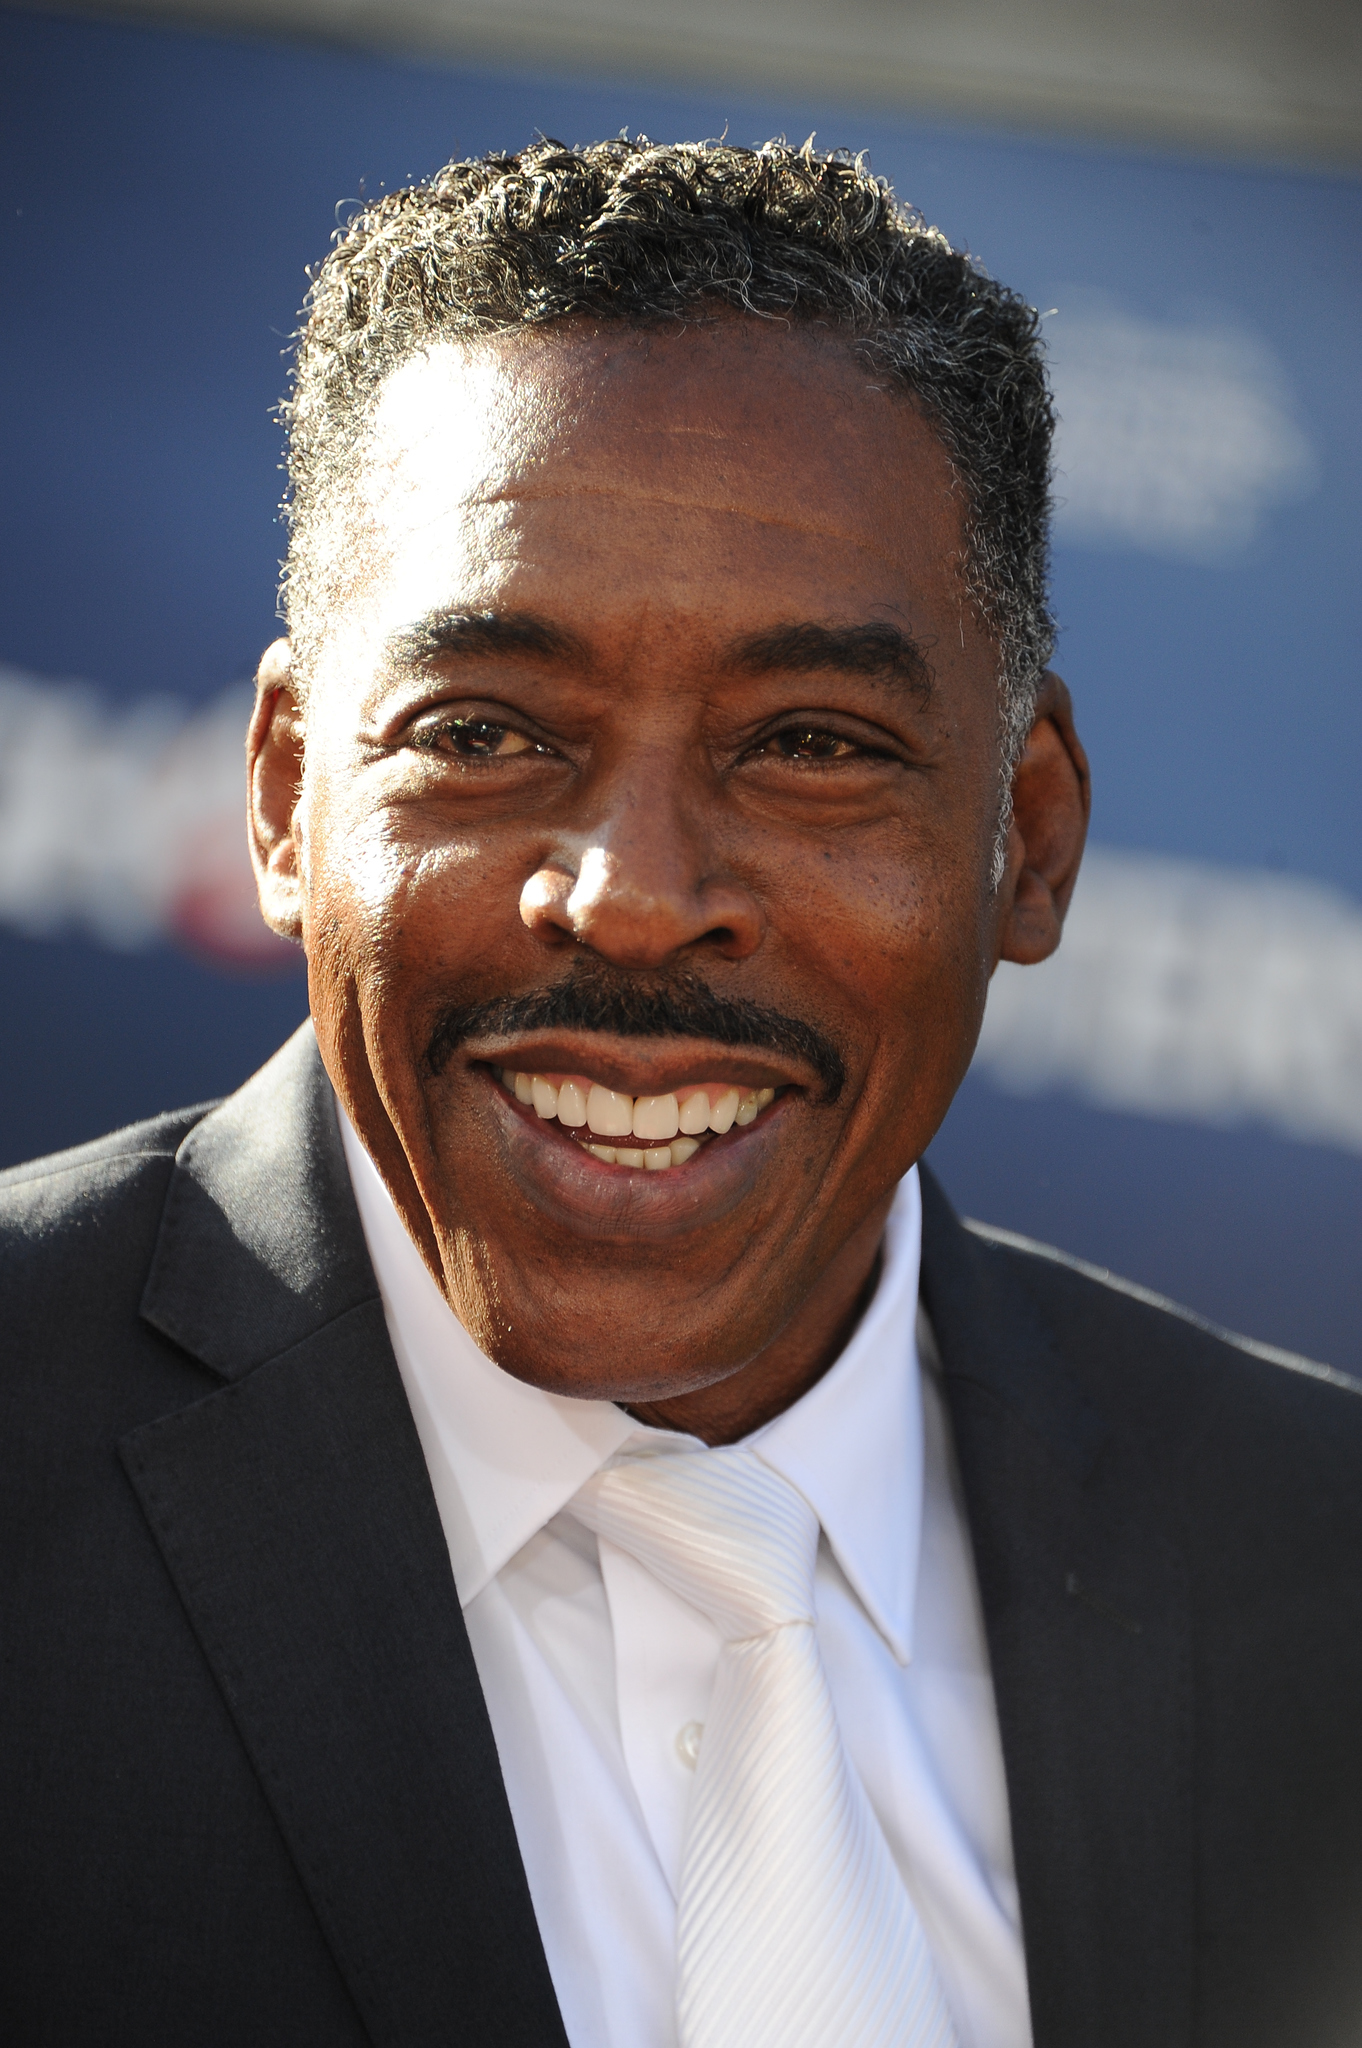 Ernie Hudson at an event for Ghostbusters (2016)